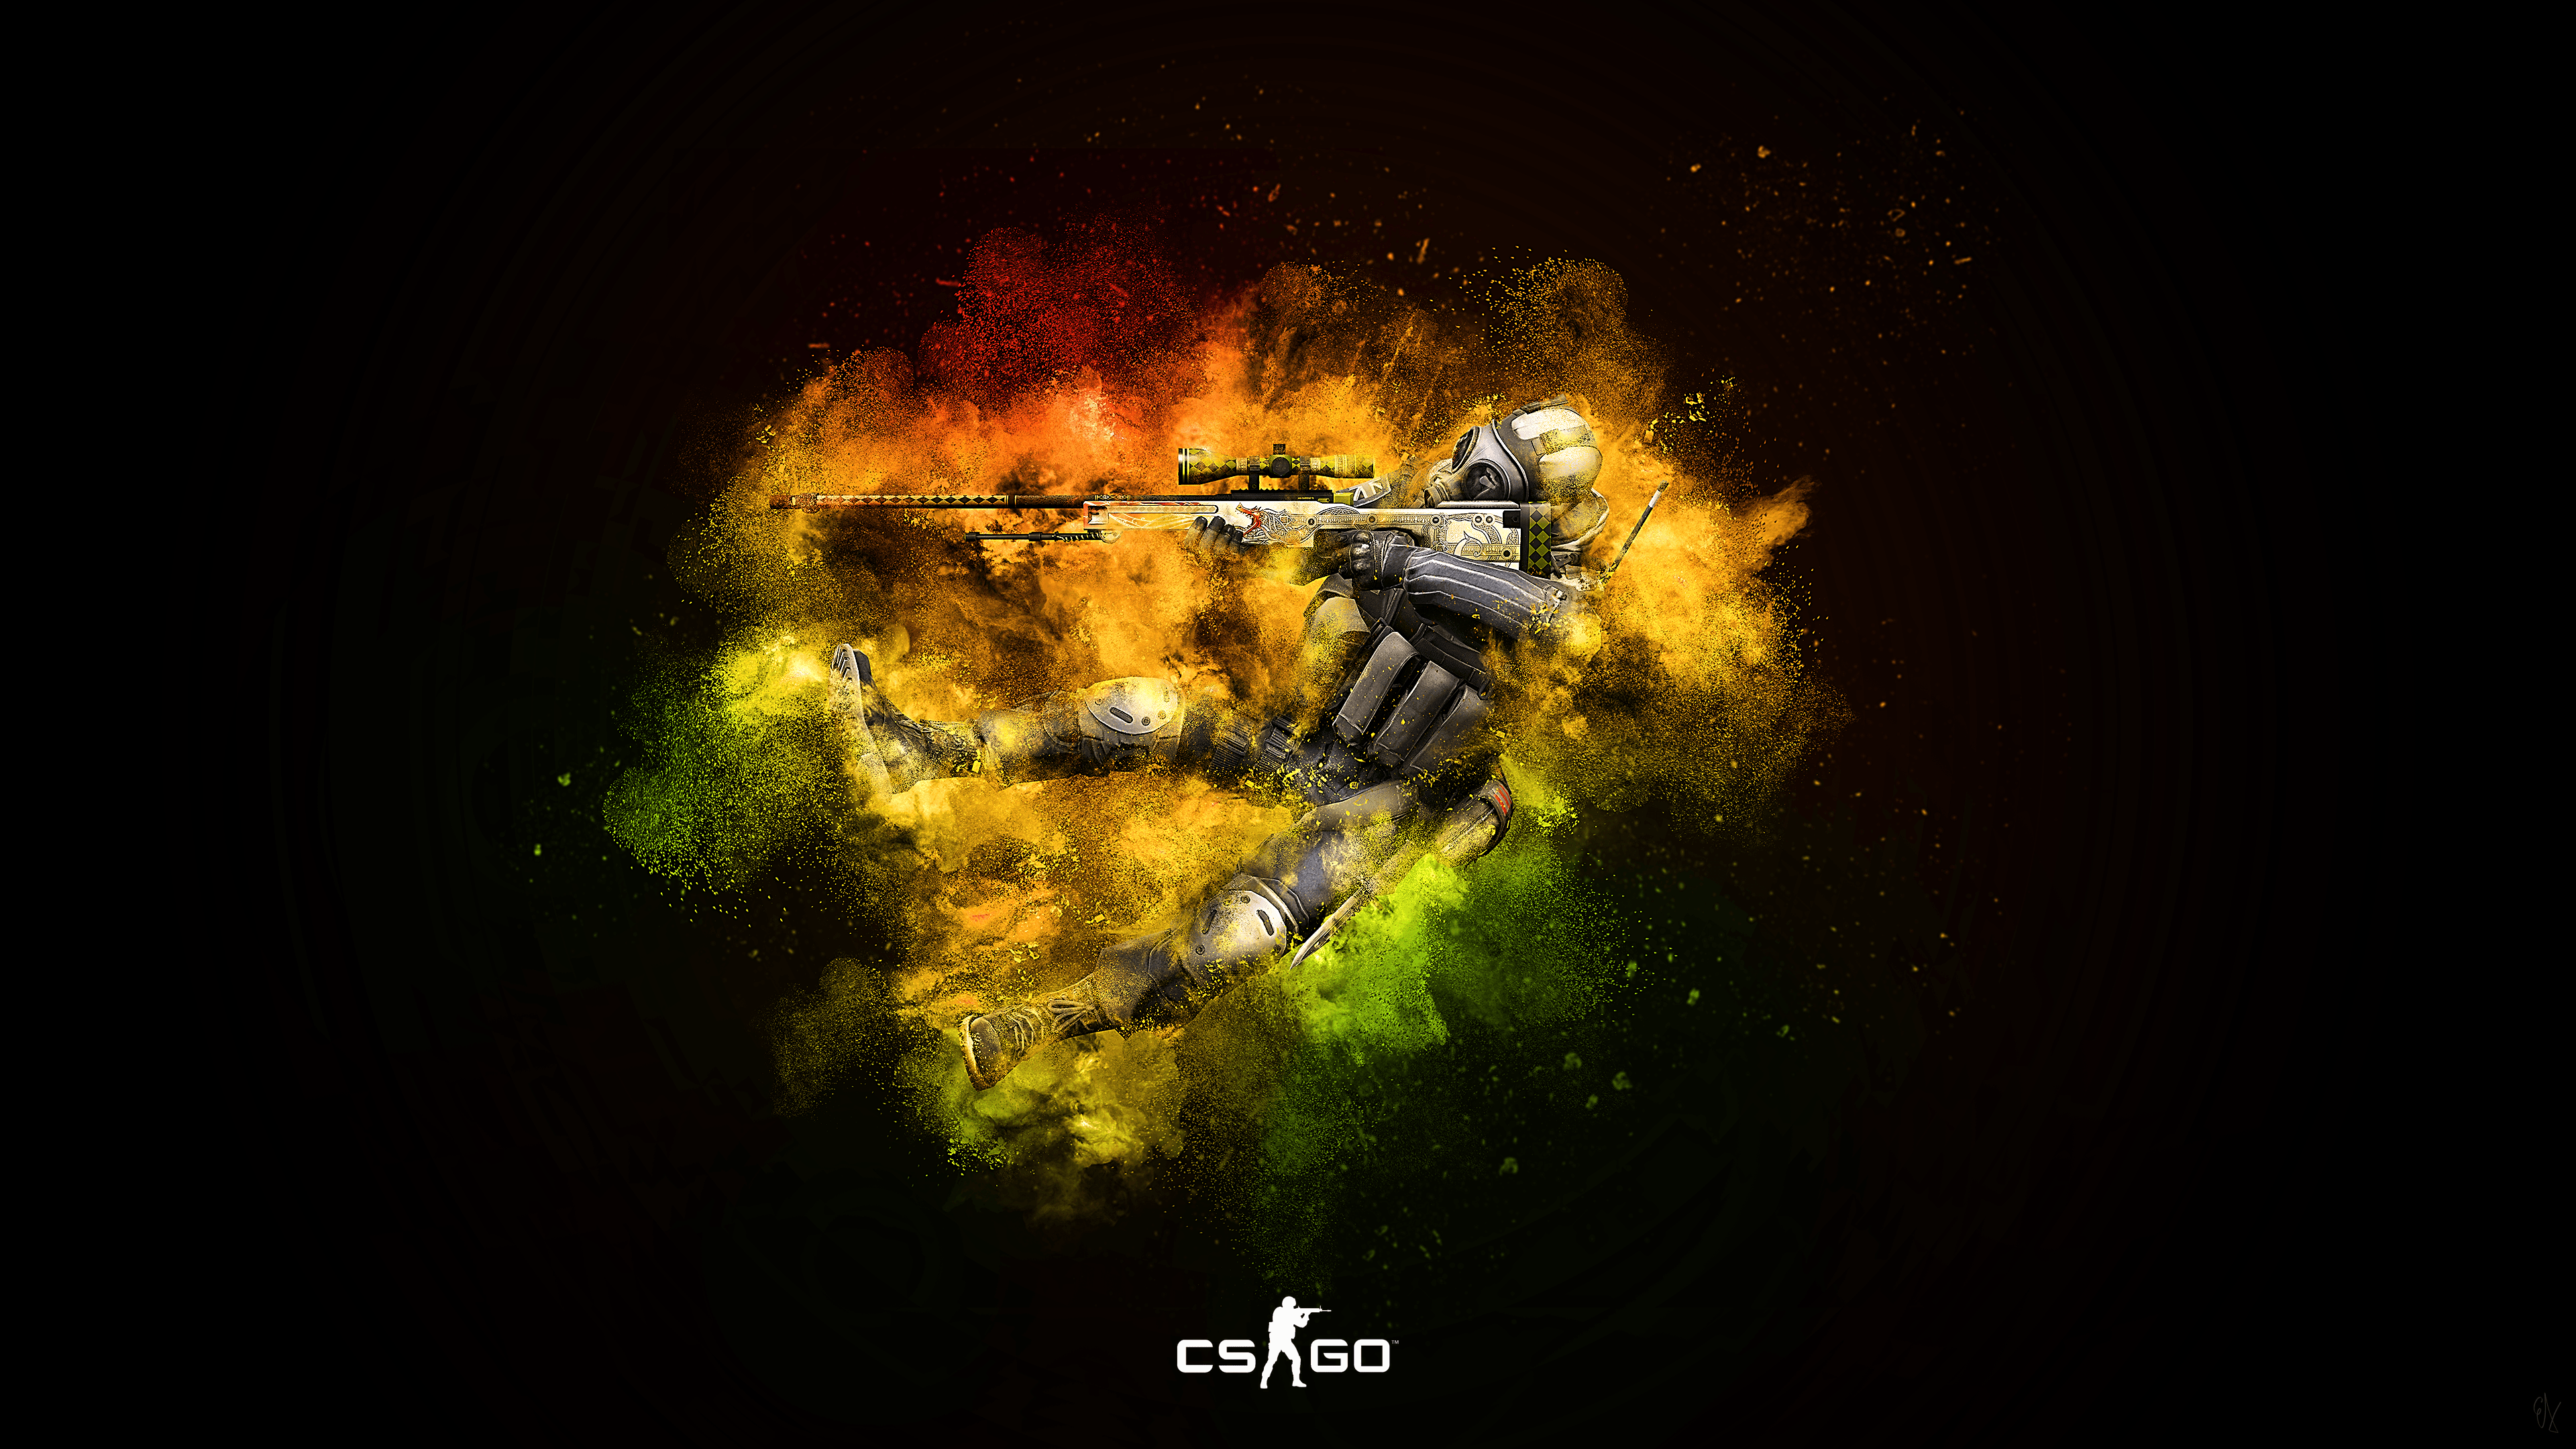 105 Amazing Cs Go Wallpapers Background Images: Ultra HD CS GO Wallpapers